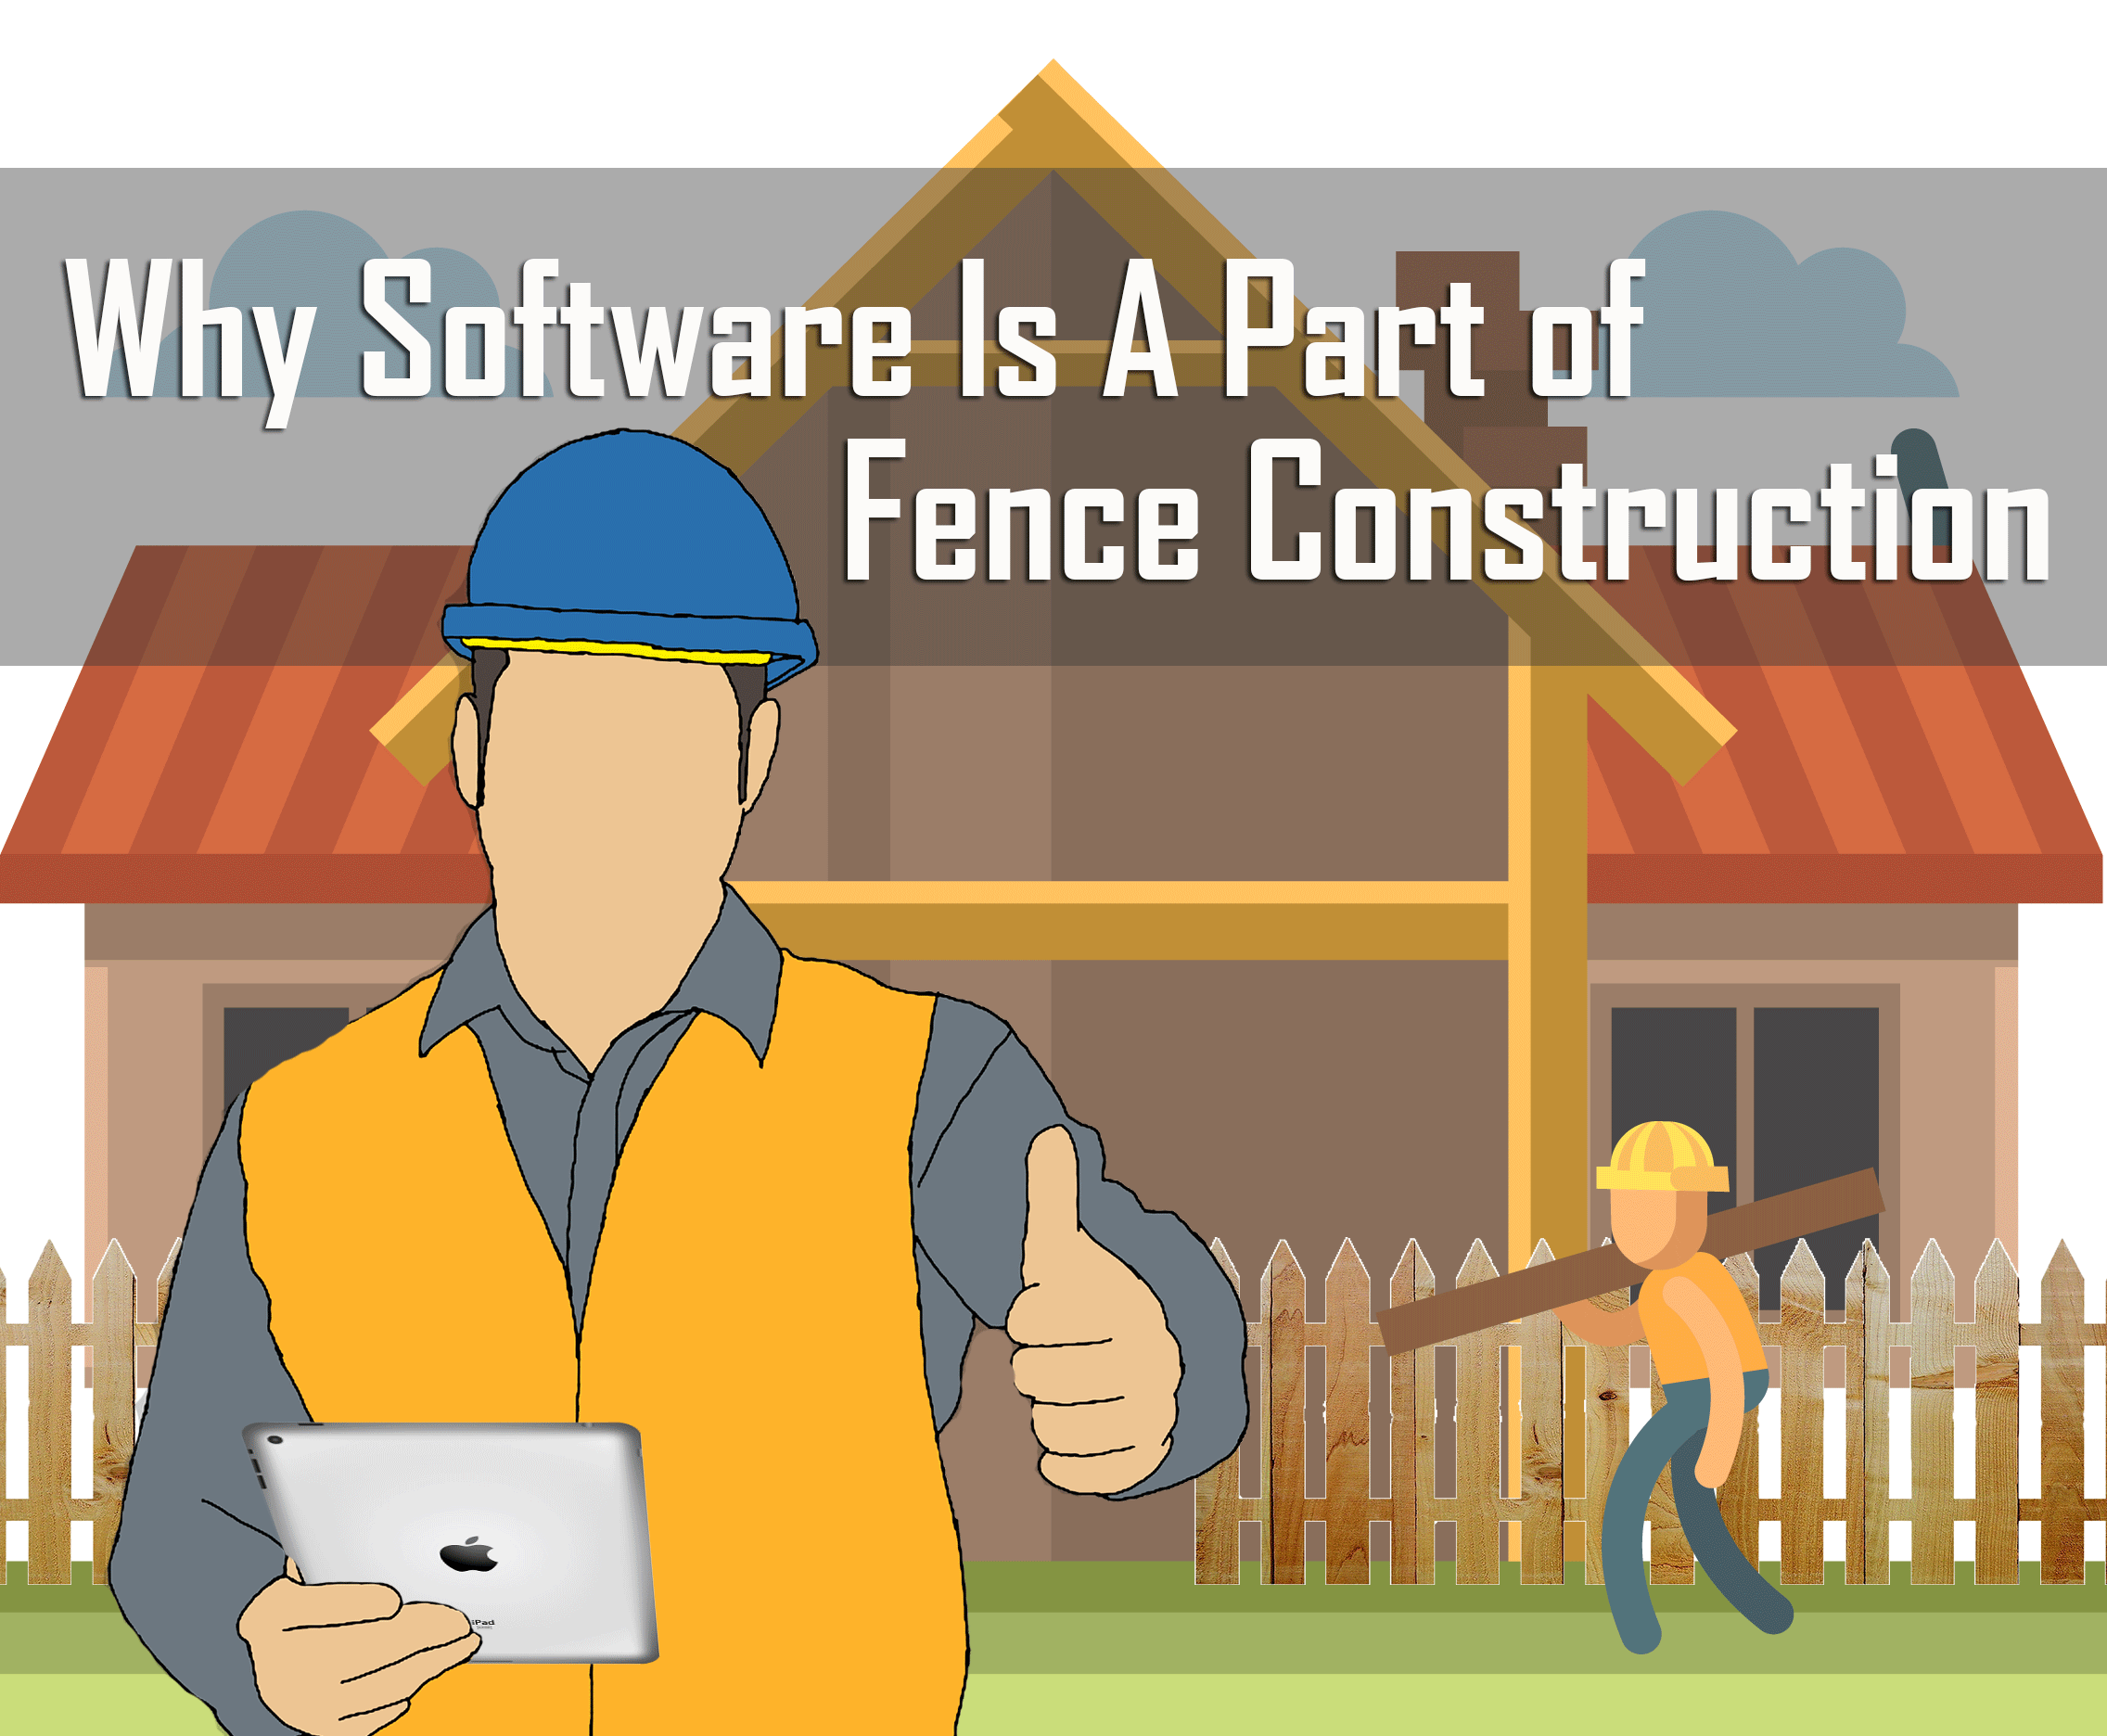 Software is a part of fence construction